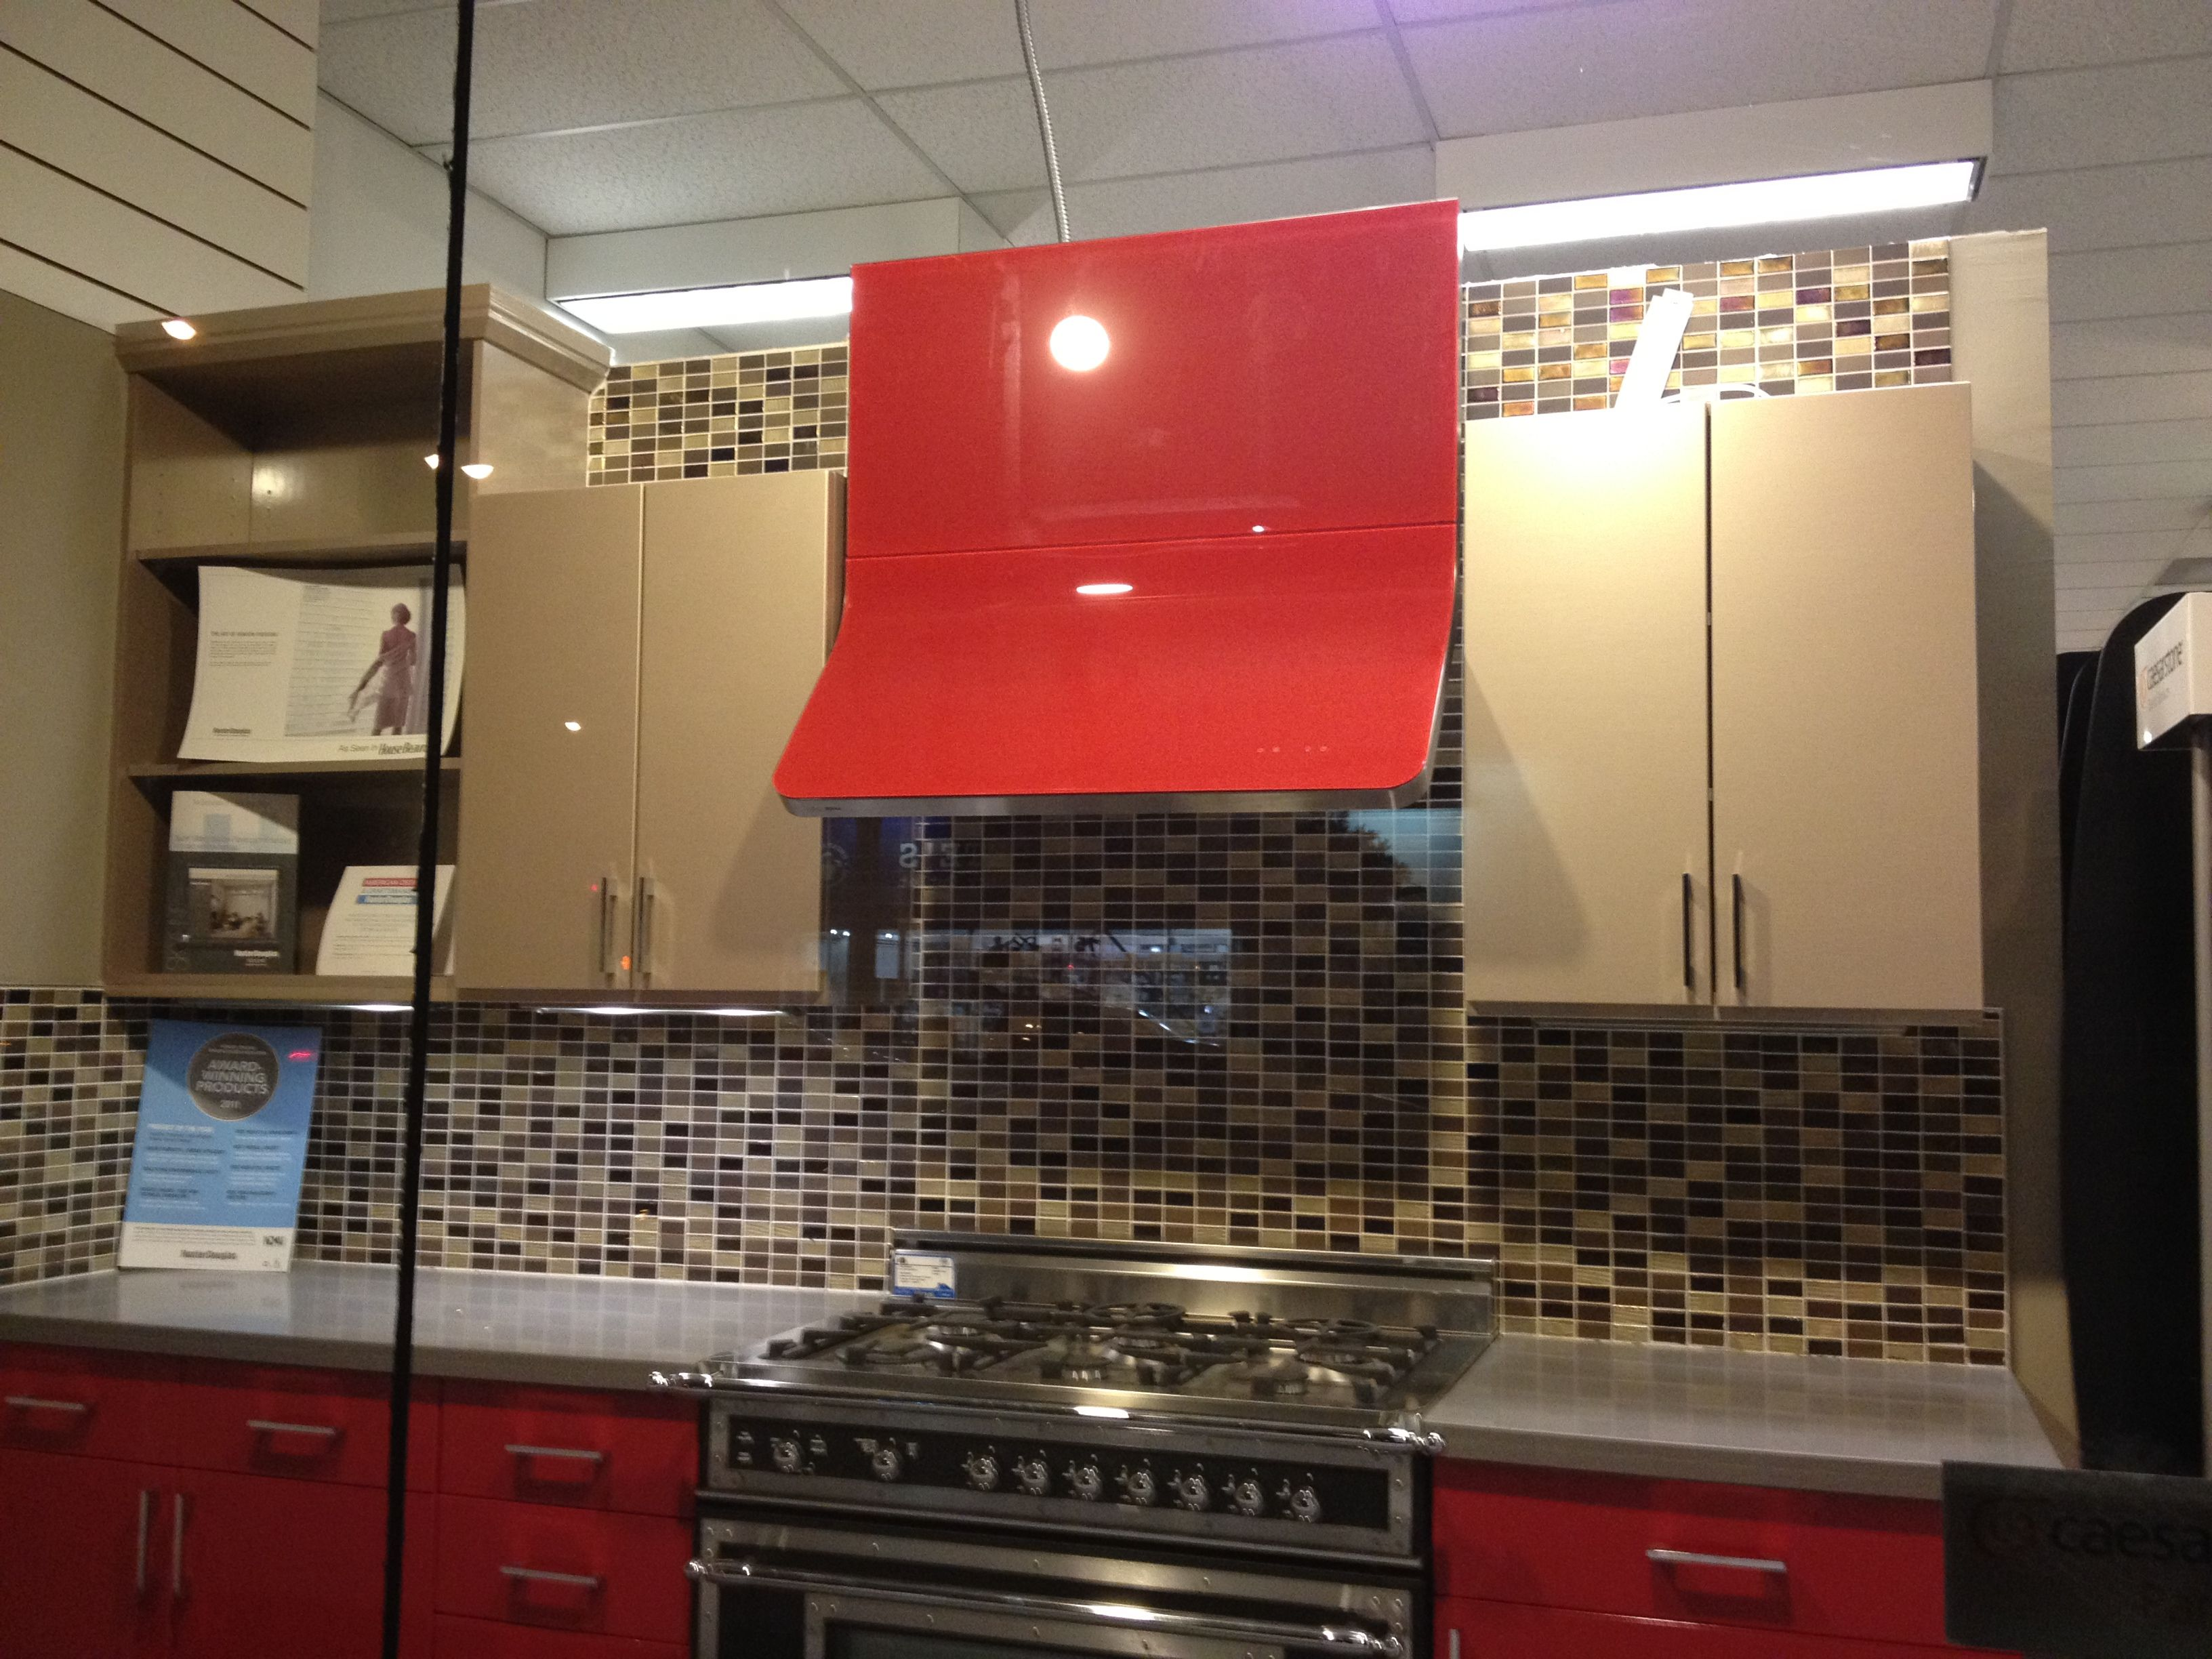 contemporary range hoo hood stove decorations depot cabinet hoods cfm ductless vent for kitchenaid home quietest kitchen vents under lowes zephyr